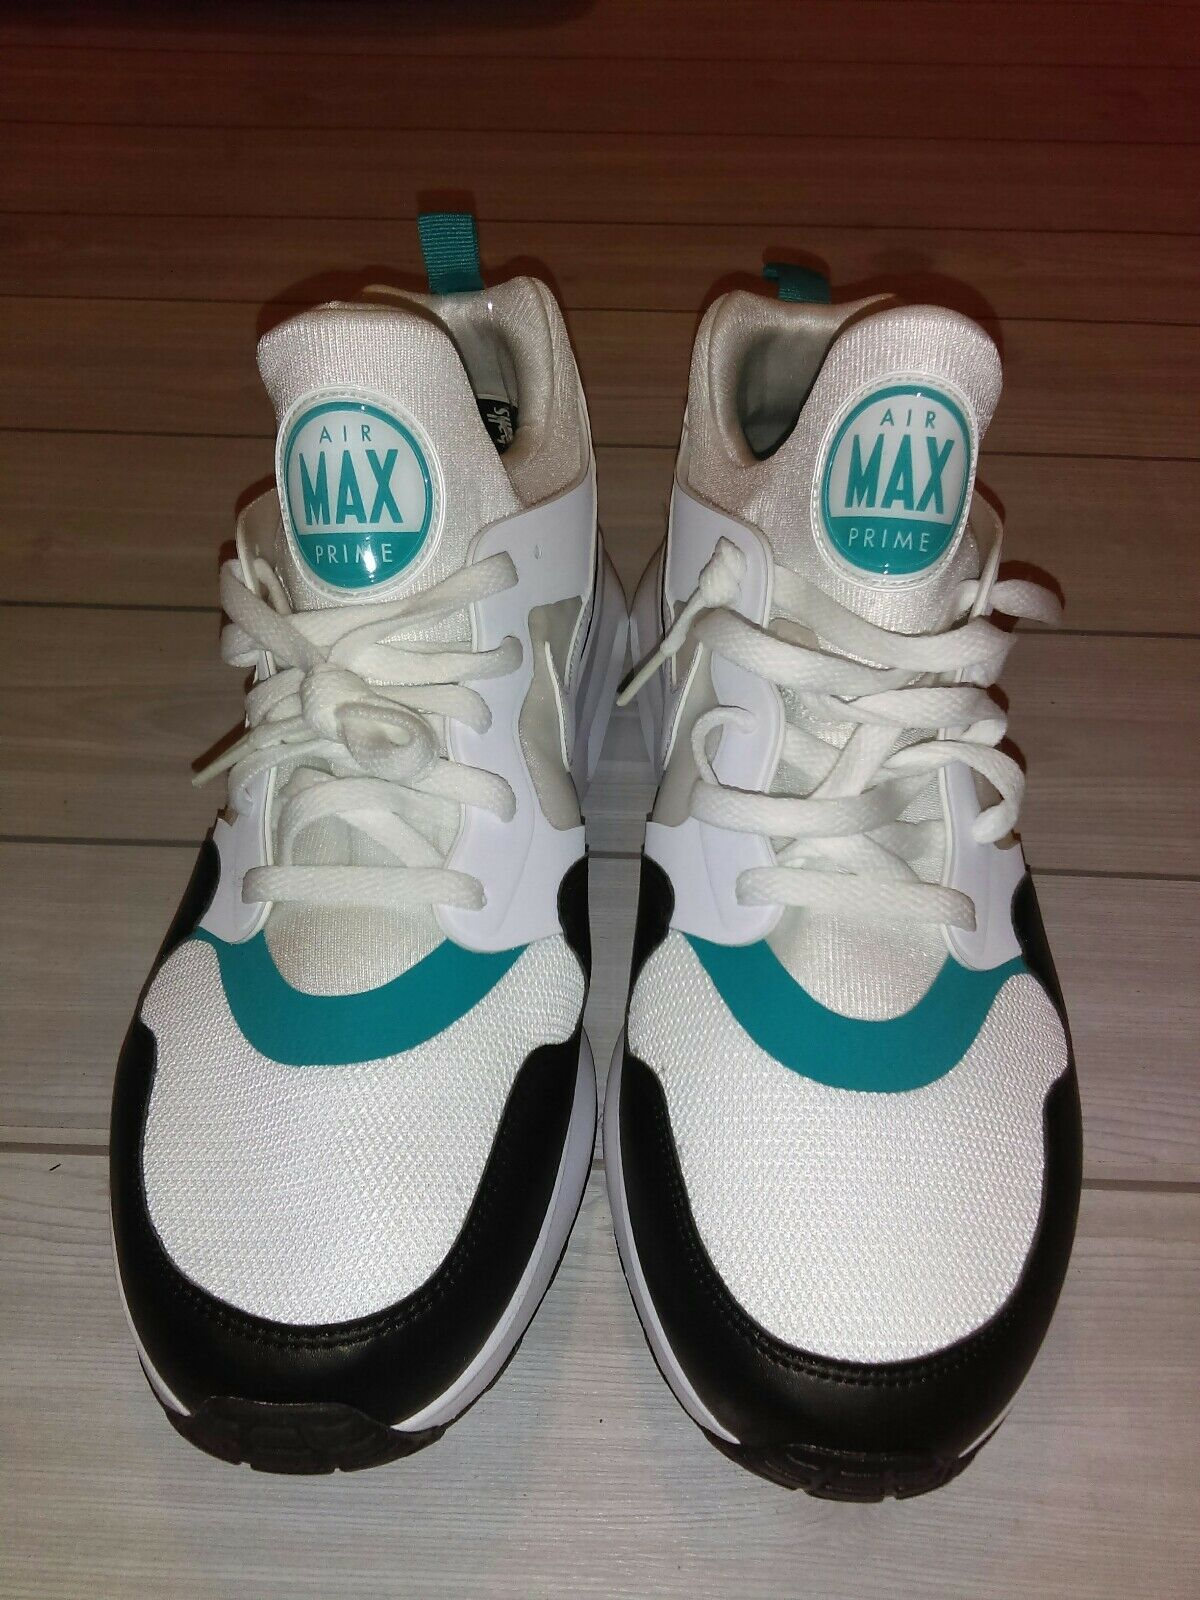 The most popular shoes for men and women NEW Nike Air Max Prime mens size 12